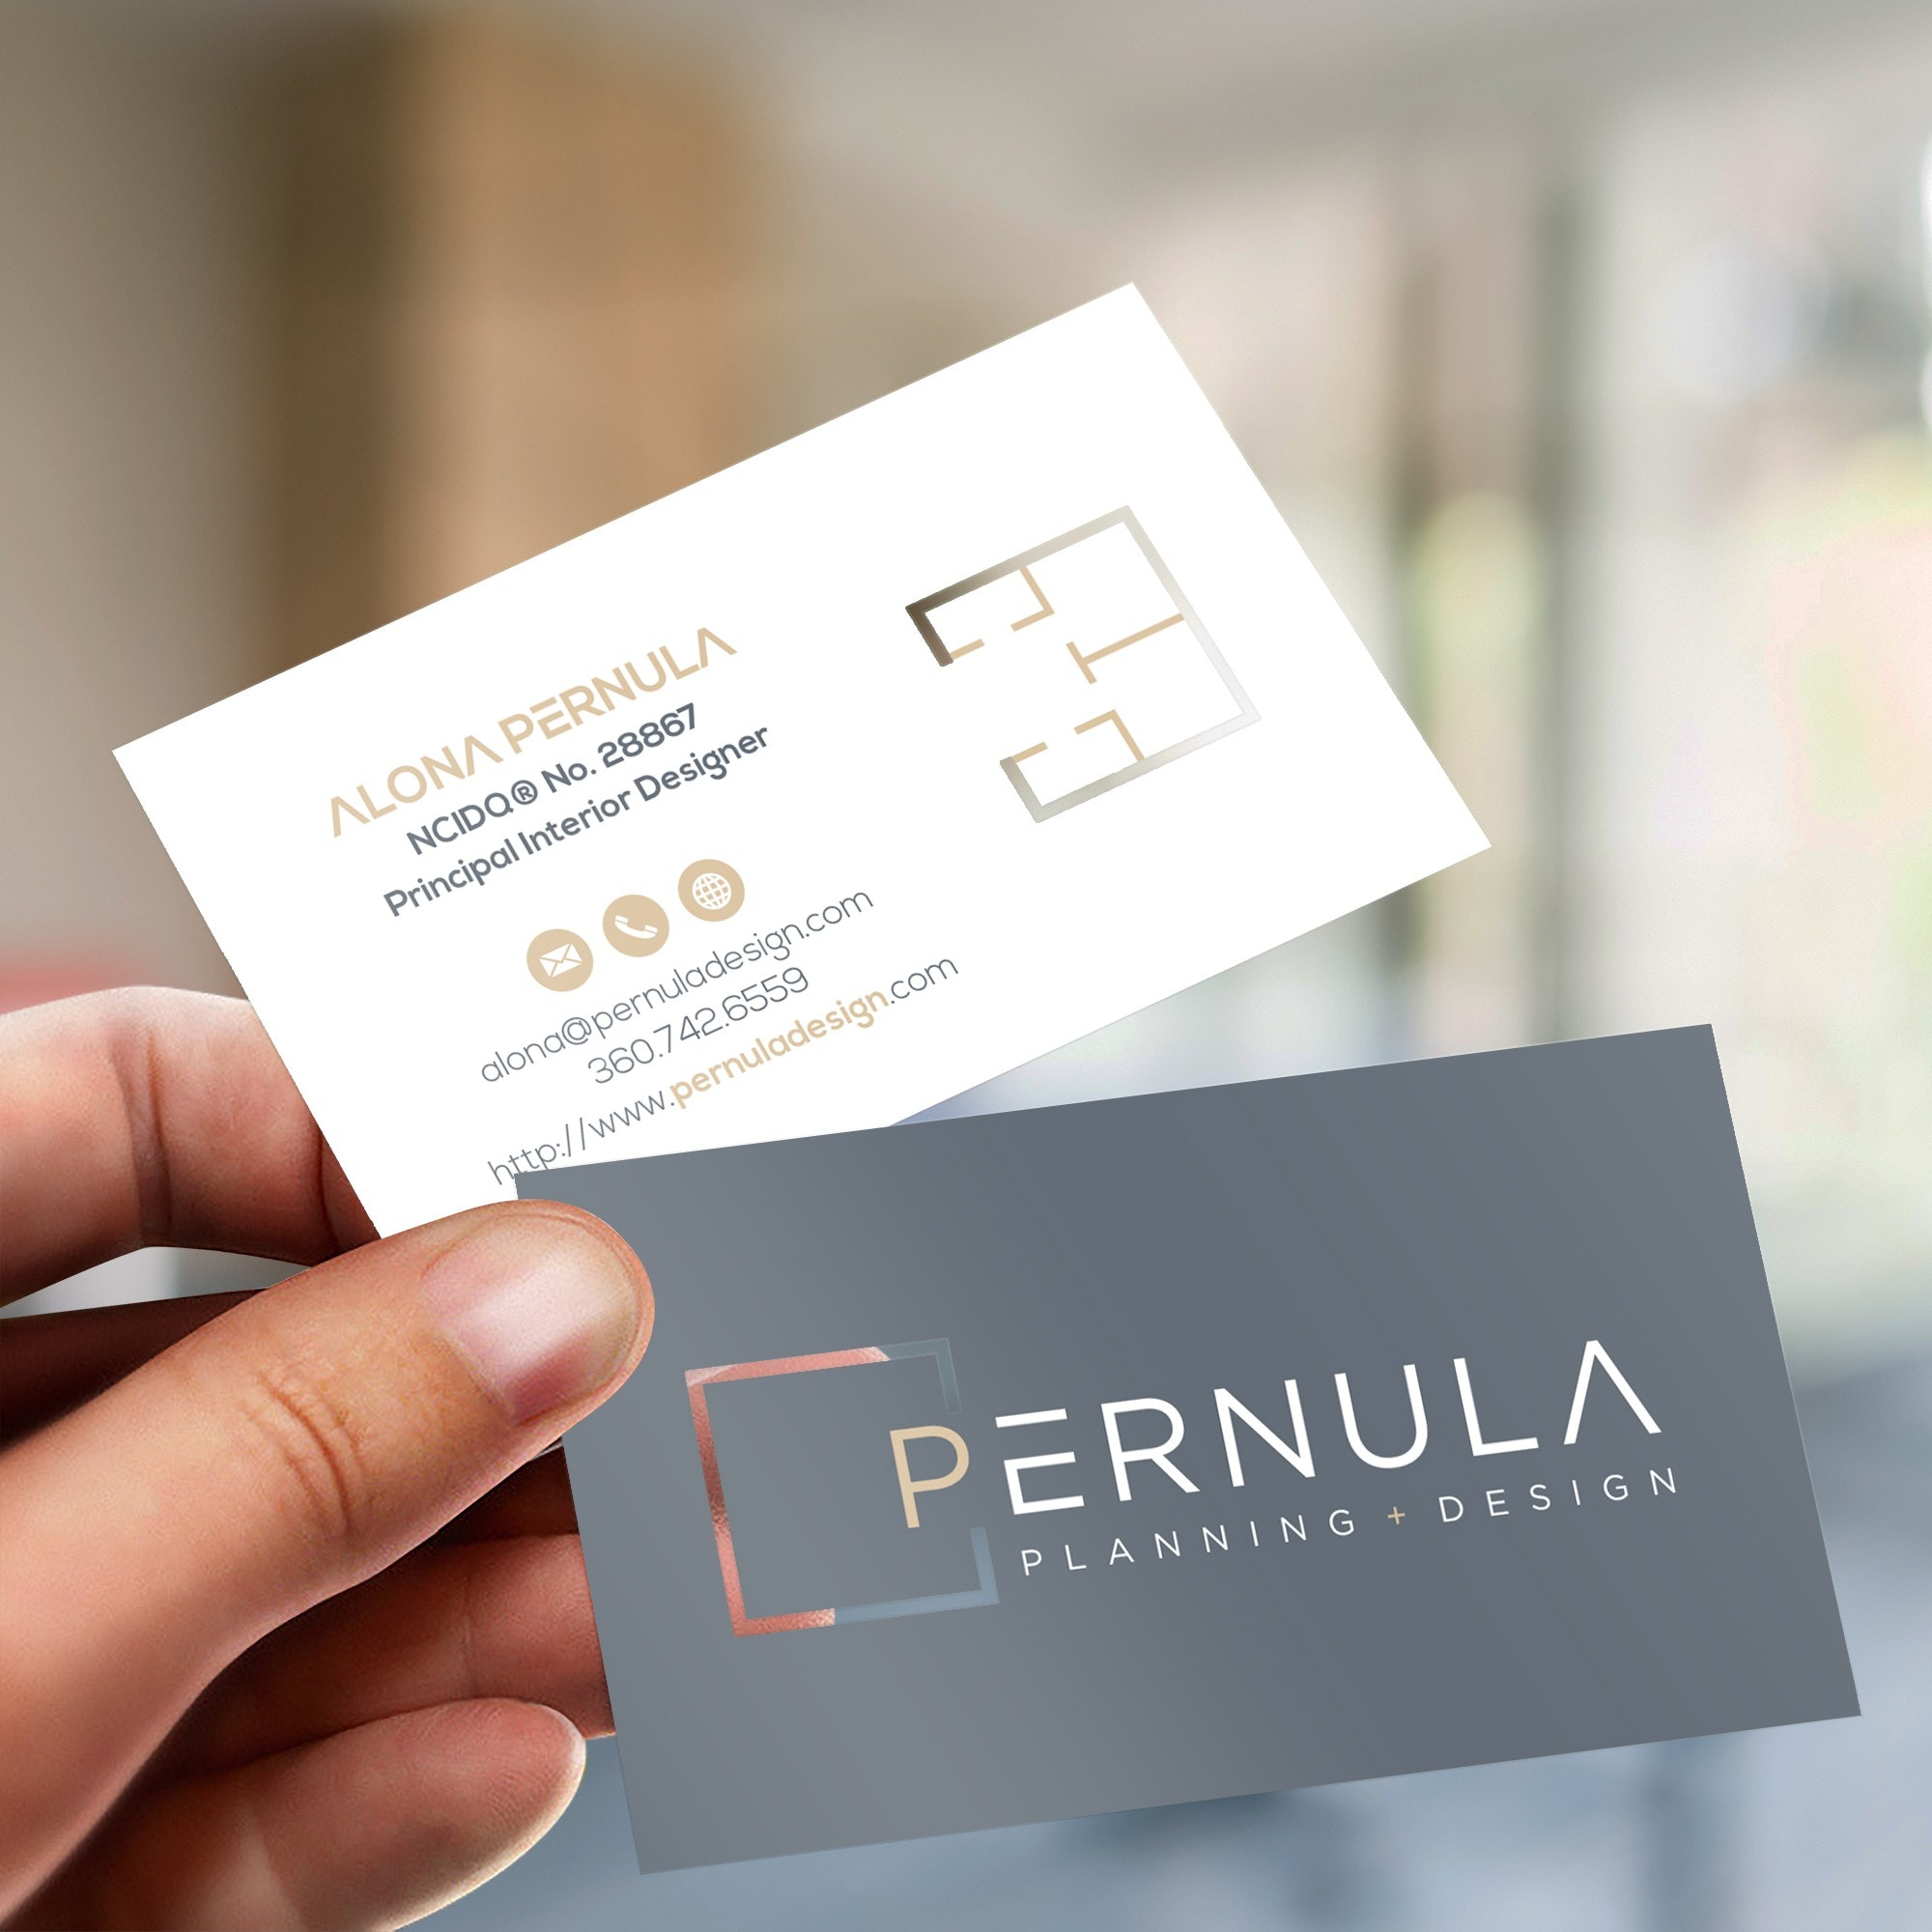 the best business card fonts to make you stand out 99designspernula planning design business card